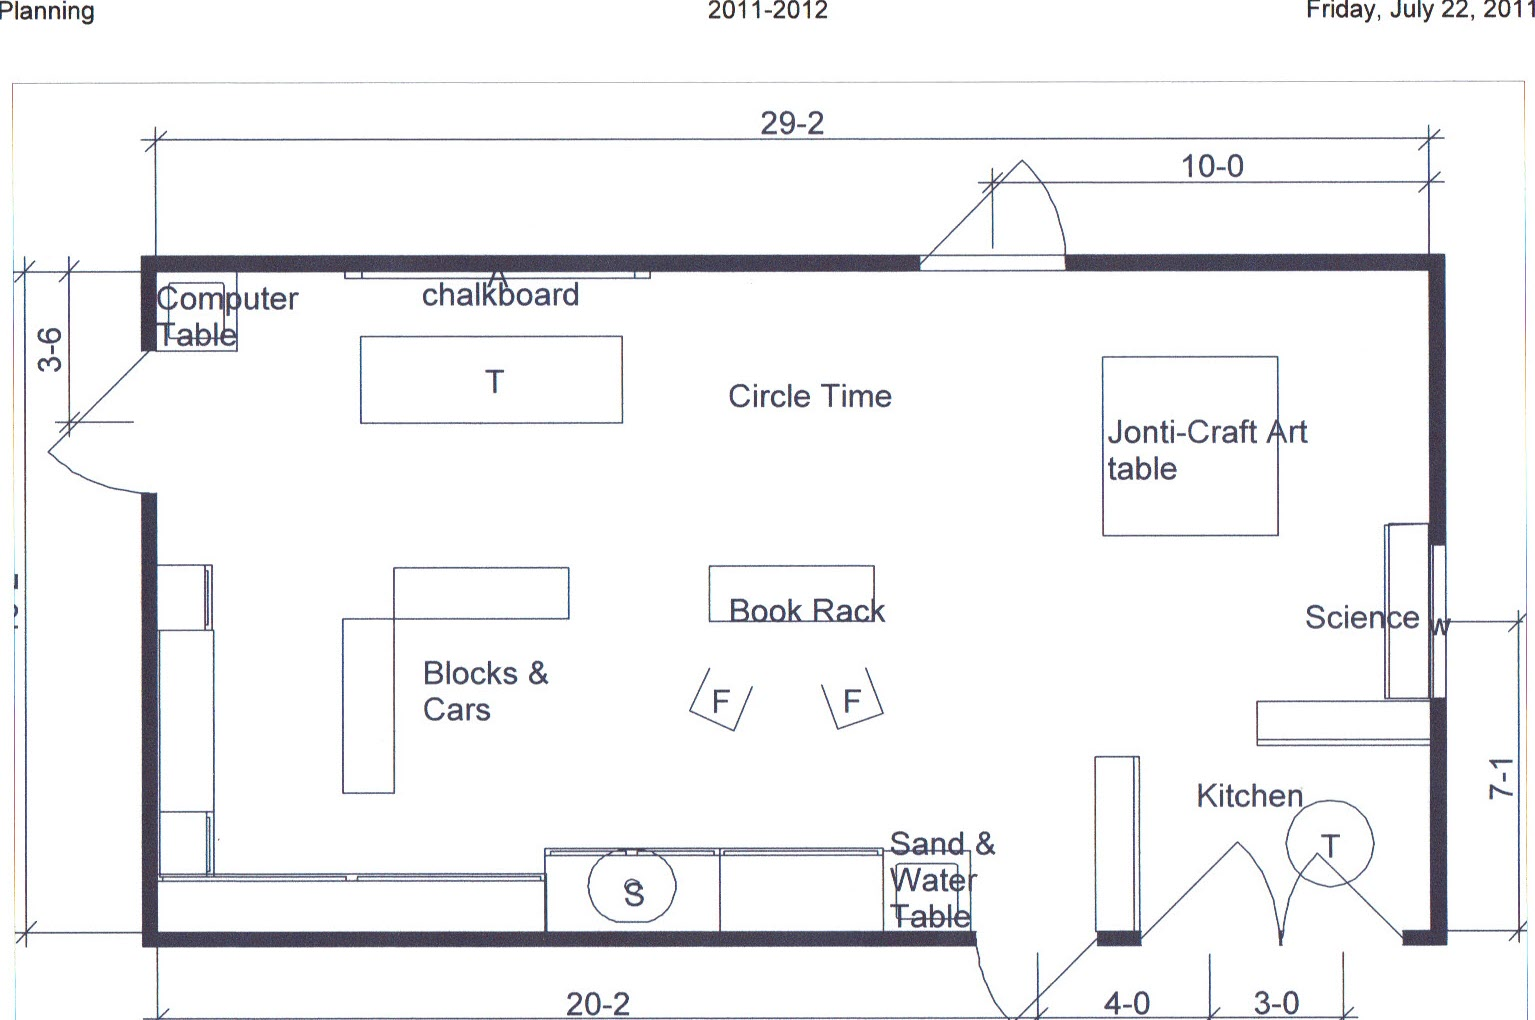 Preschool Teacher Once Again Classroom Layout 11 12